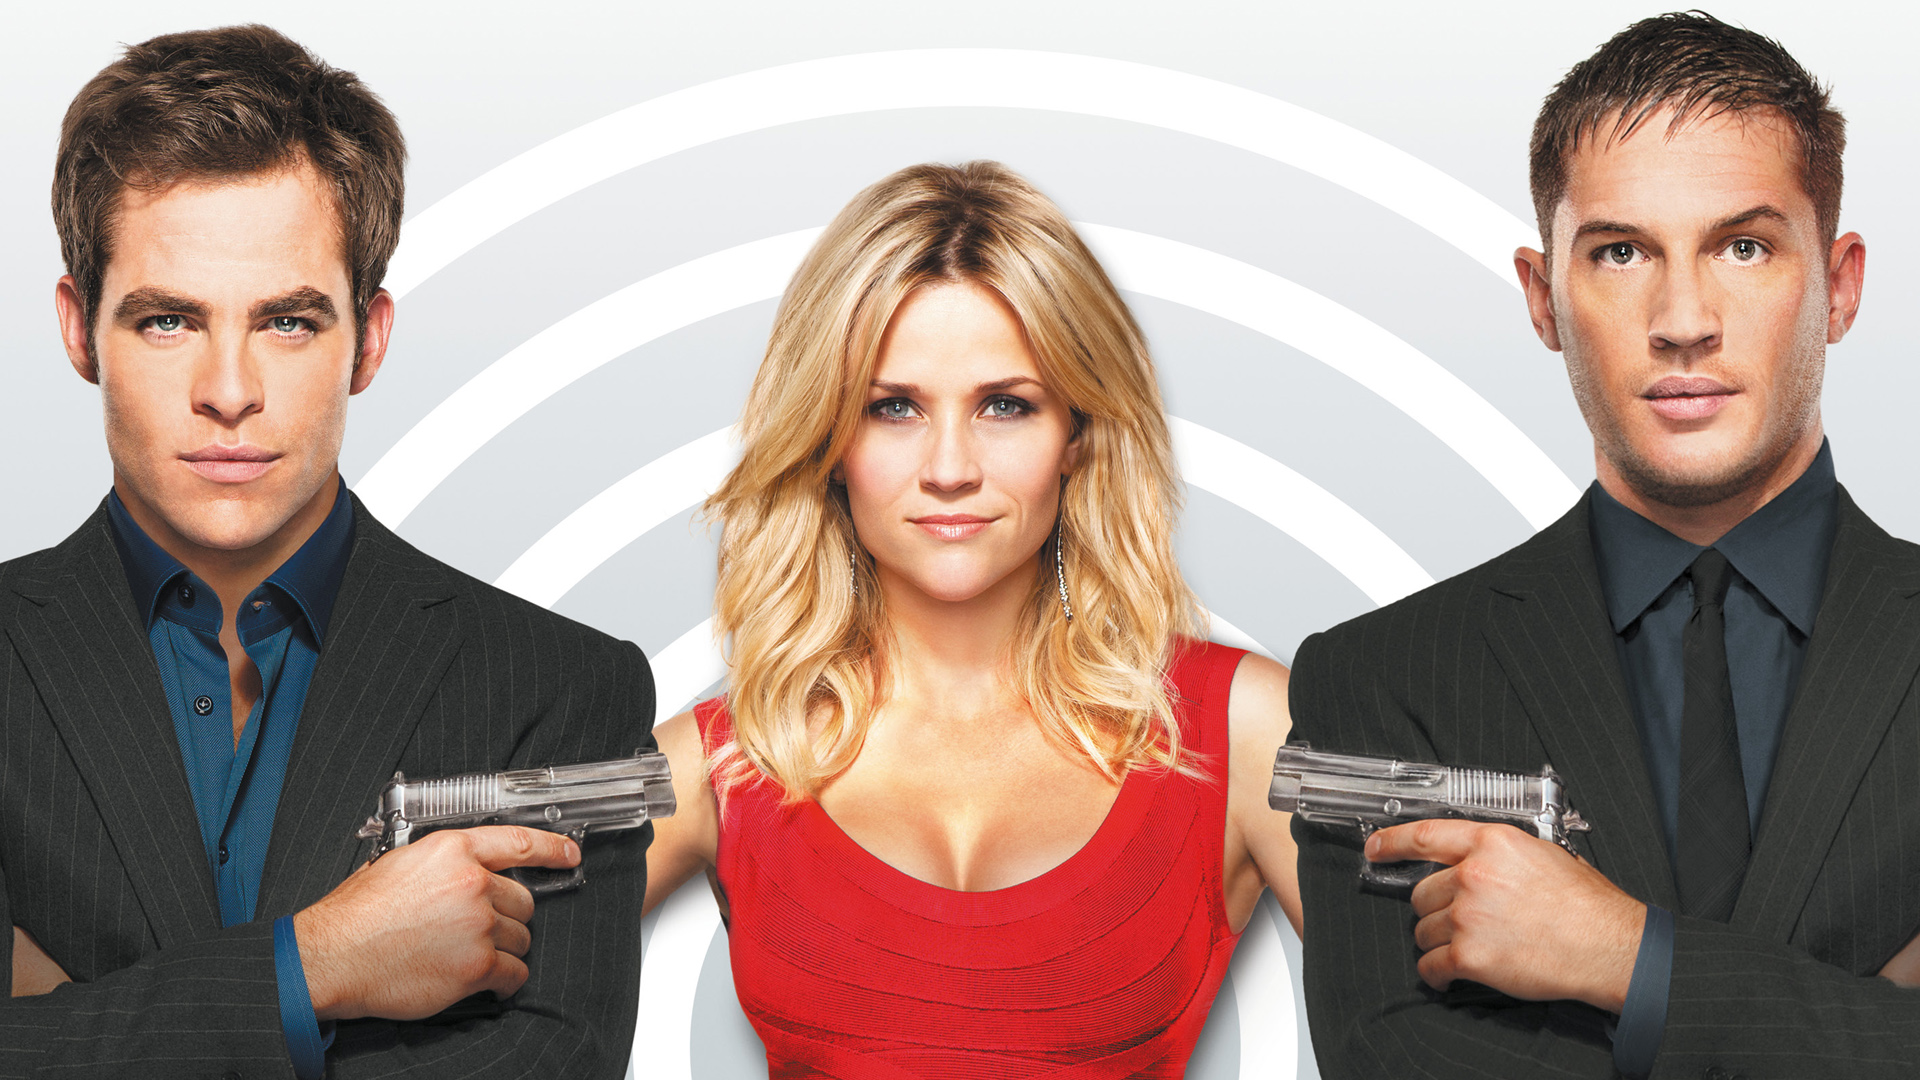 watch this means war online free 123